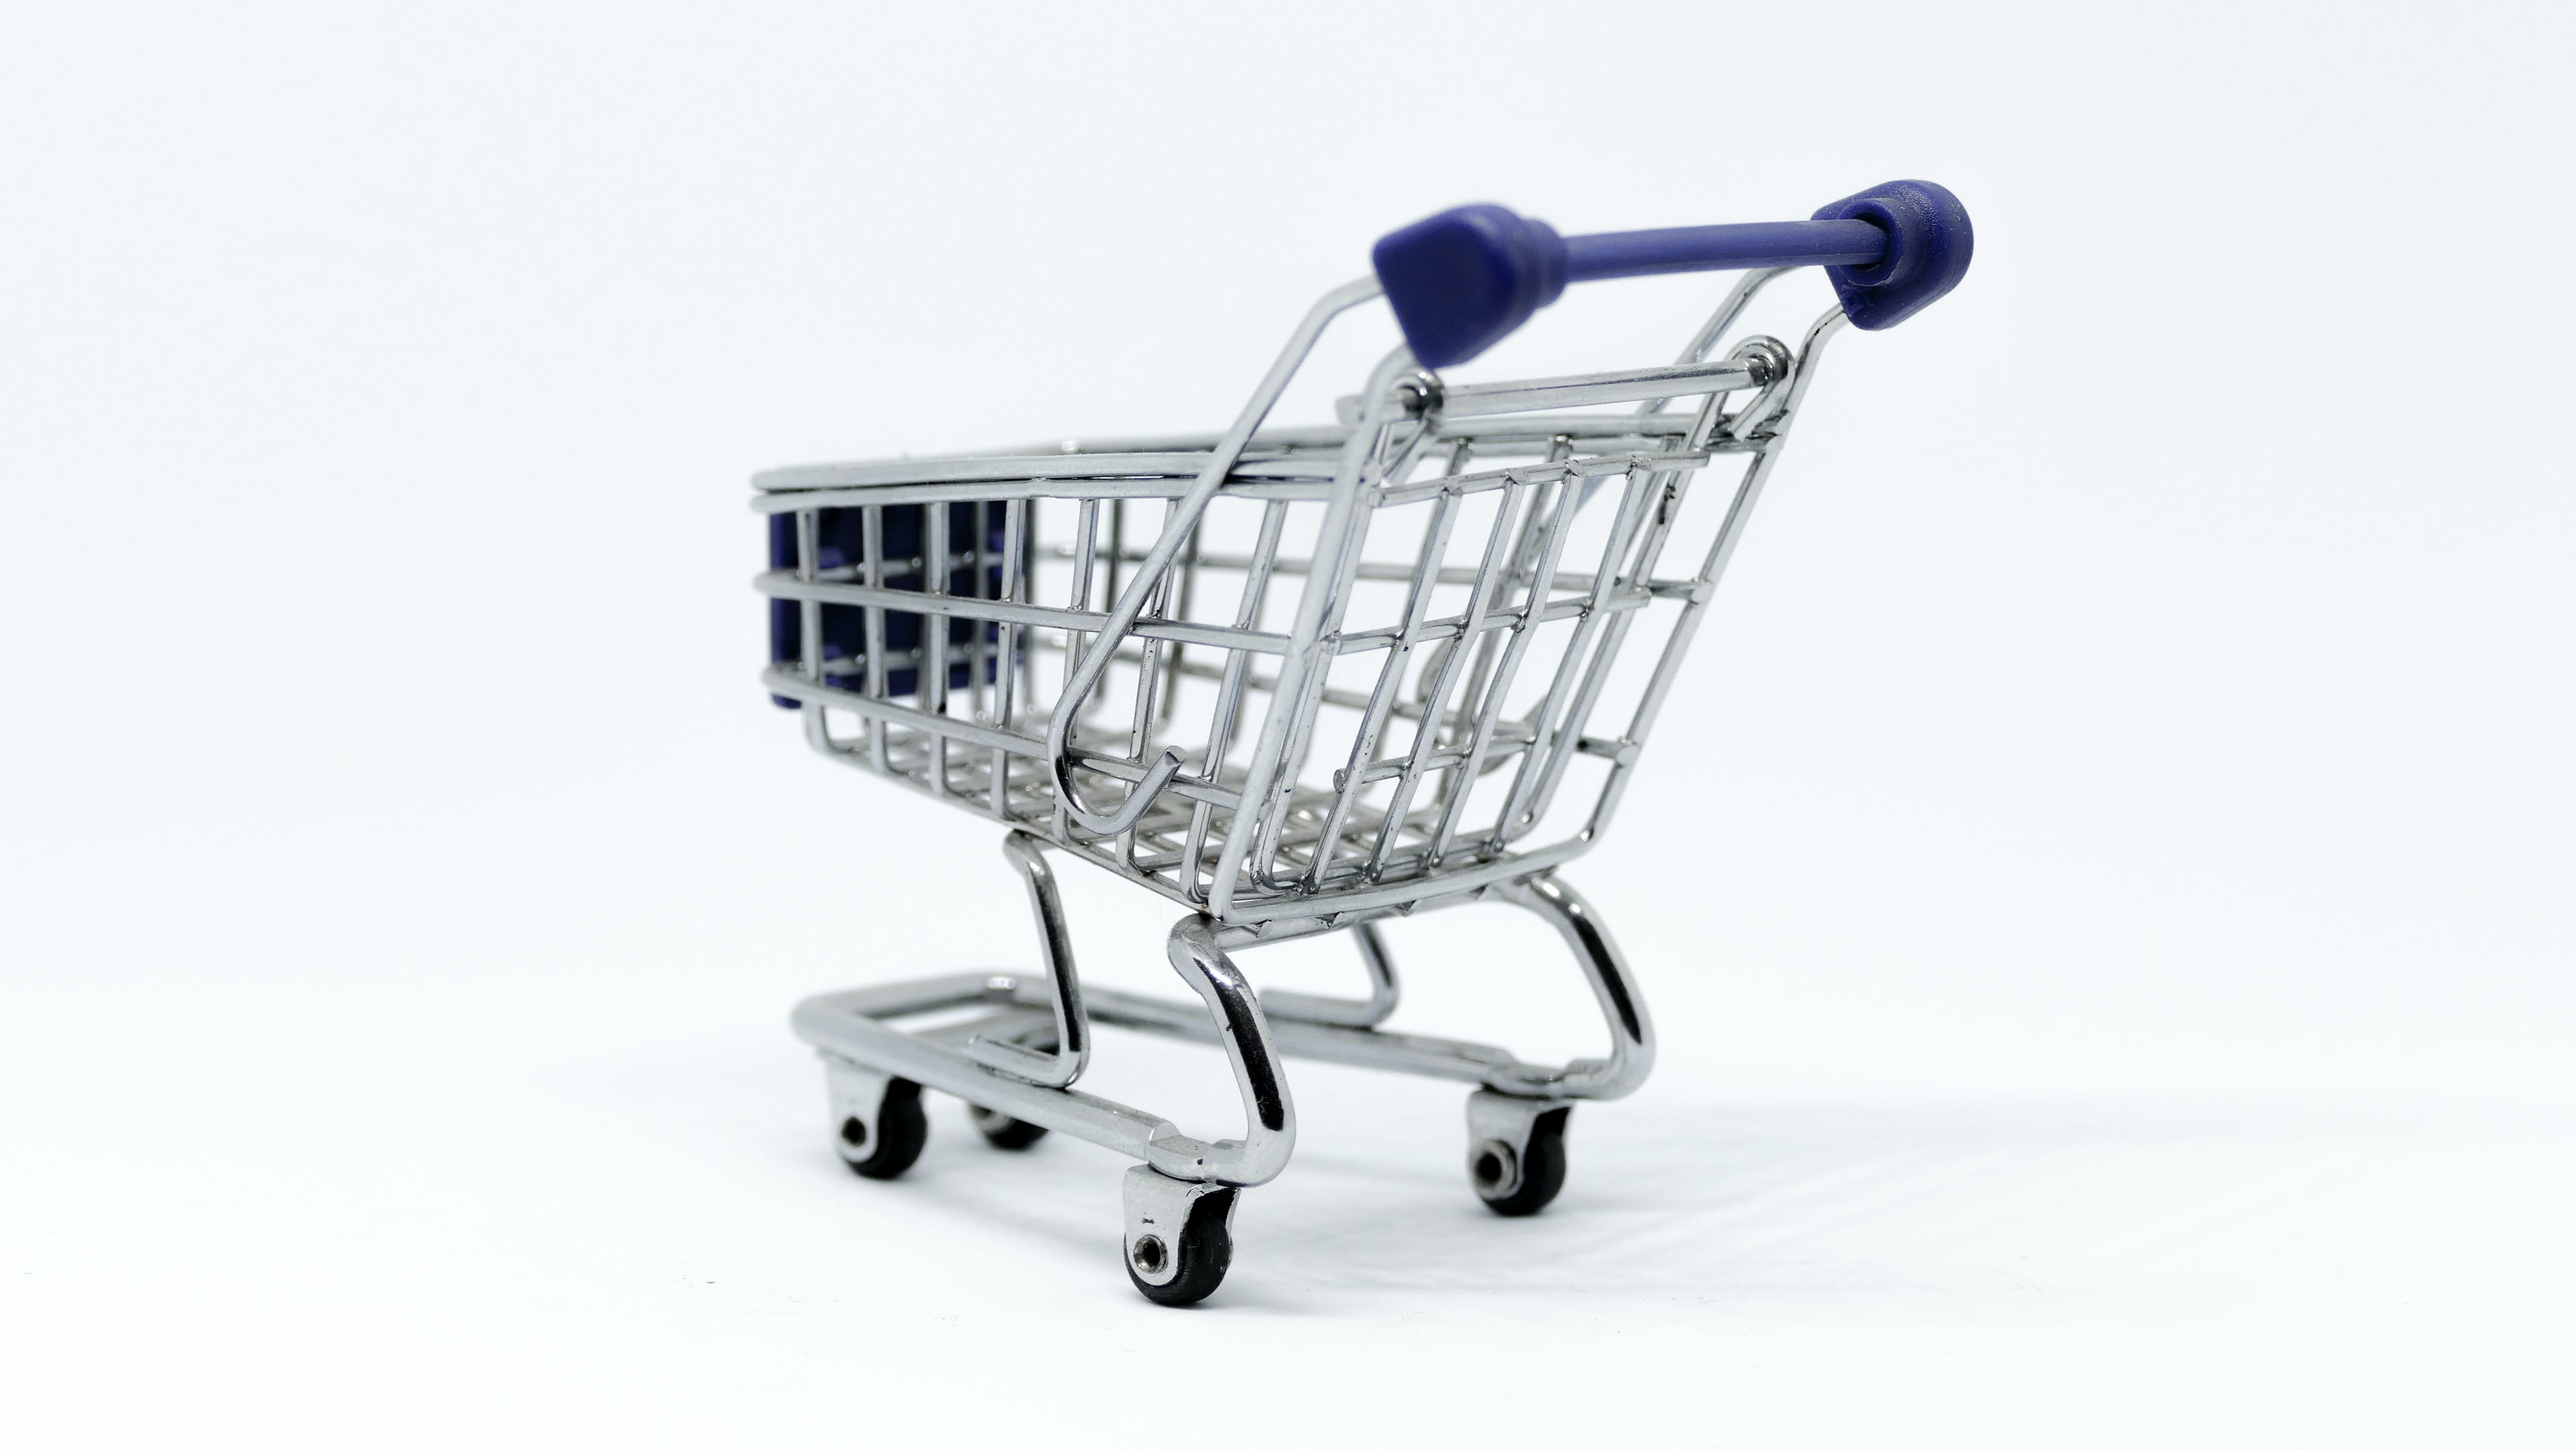 Gray and Blue Stainless Steel Shopping Cart